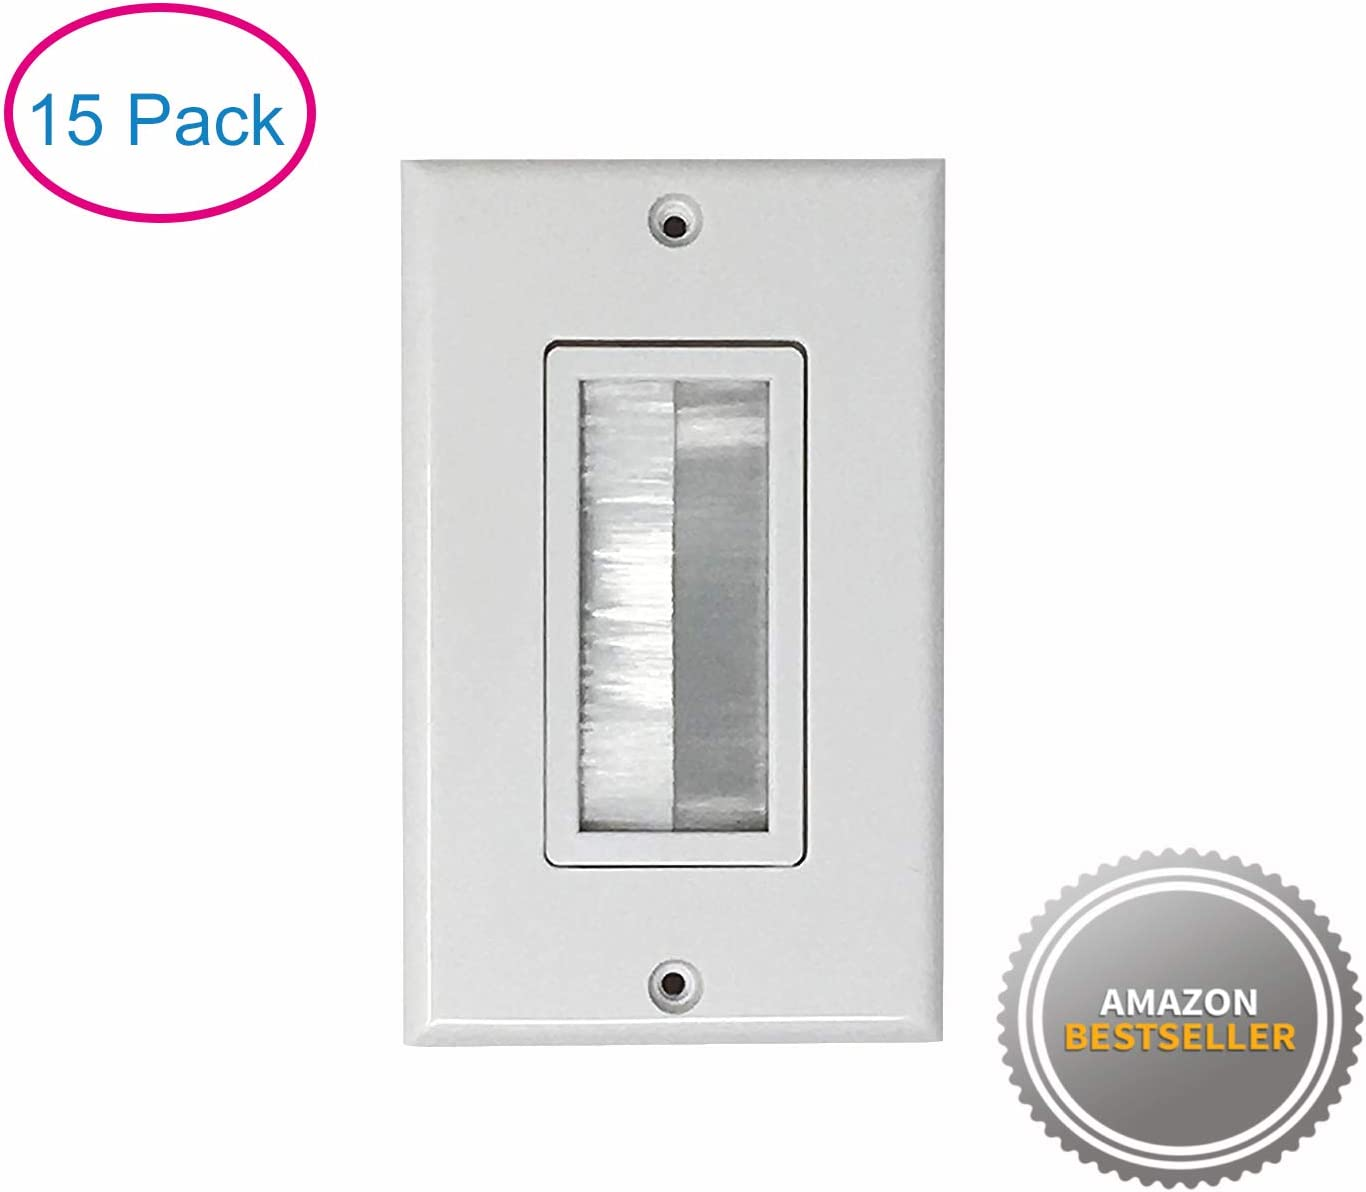 5 Pack Cable Pass Through Kenuco Single Brush Wall Plate White | Decorative Wall Plate